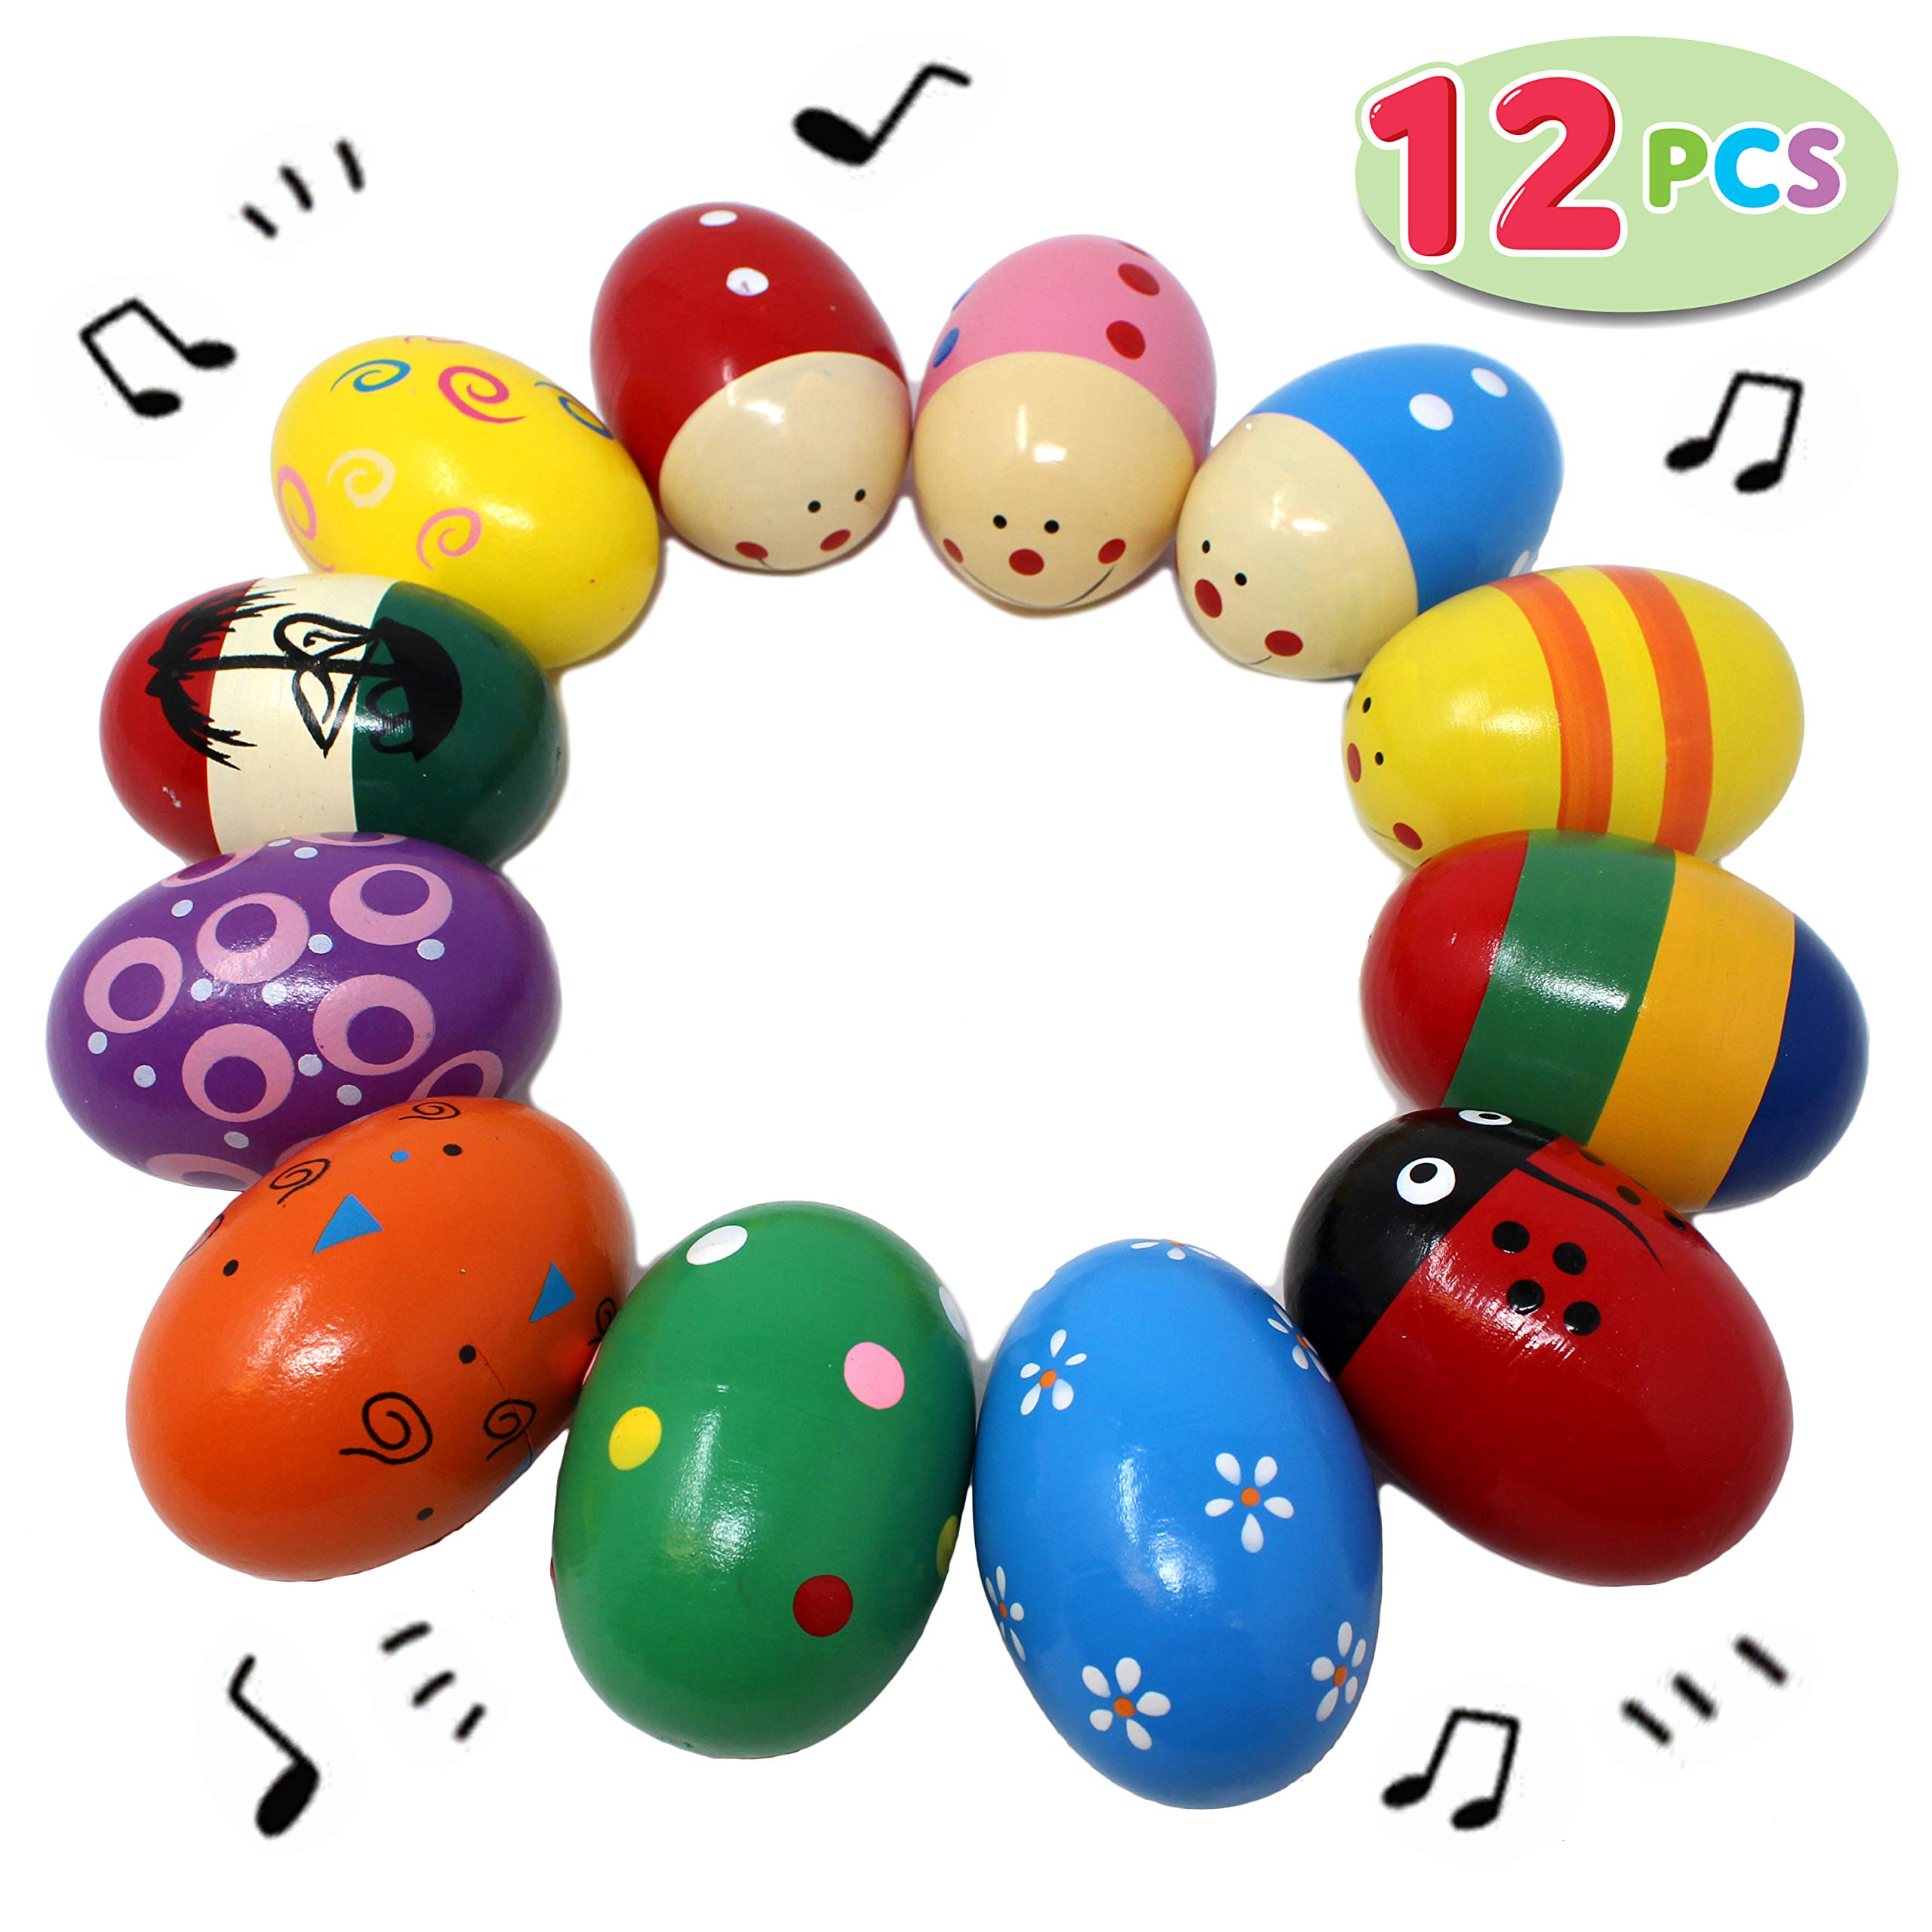 """JOYIN 12 Pieces 3"""" Wooden Egg Shakers Maracas Percussion Musical for Party Favors, Classroom Prize Supplies, Musical Instrument, Basket Stuffers Fillers, Easter Hunt"""